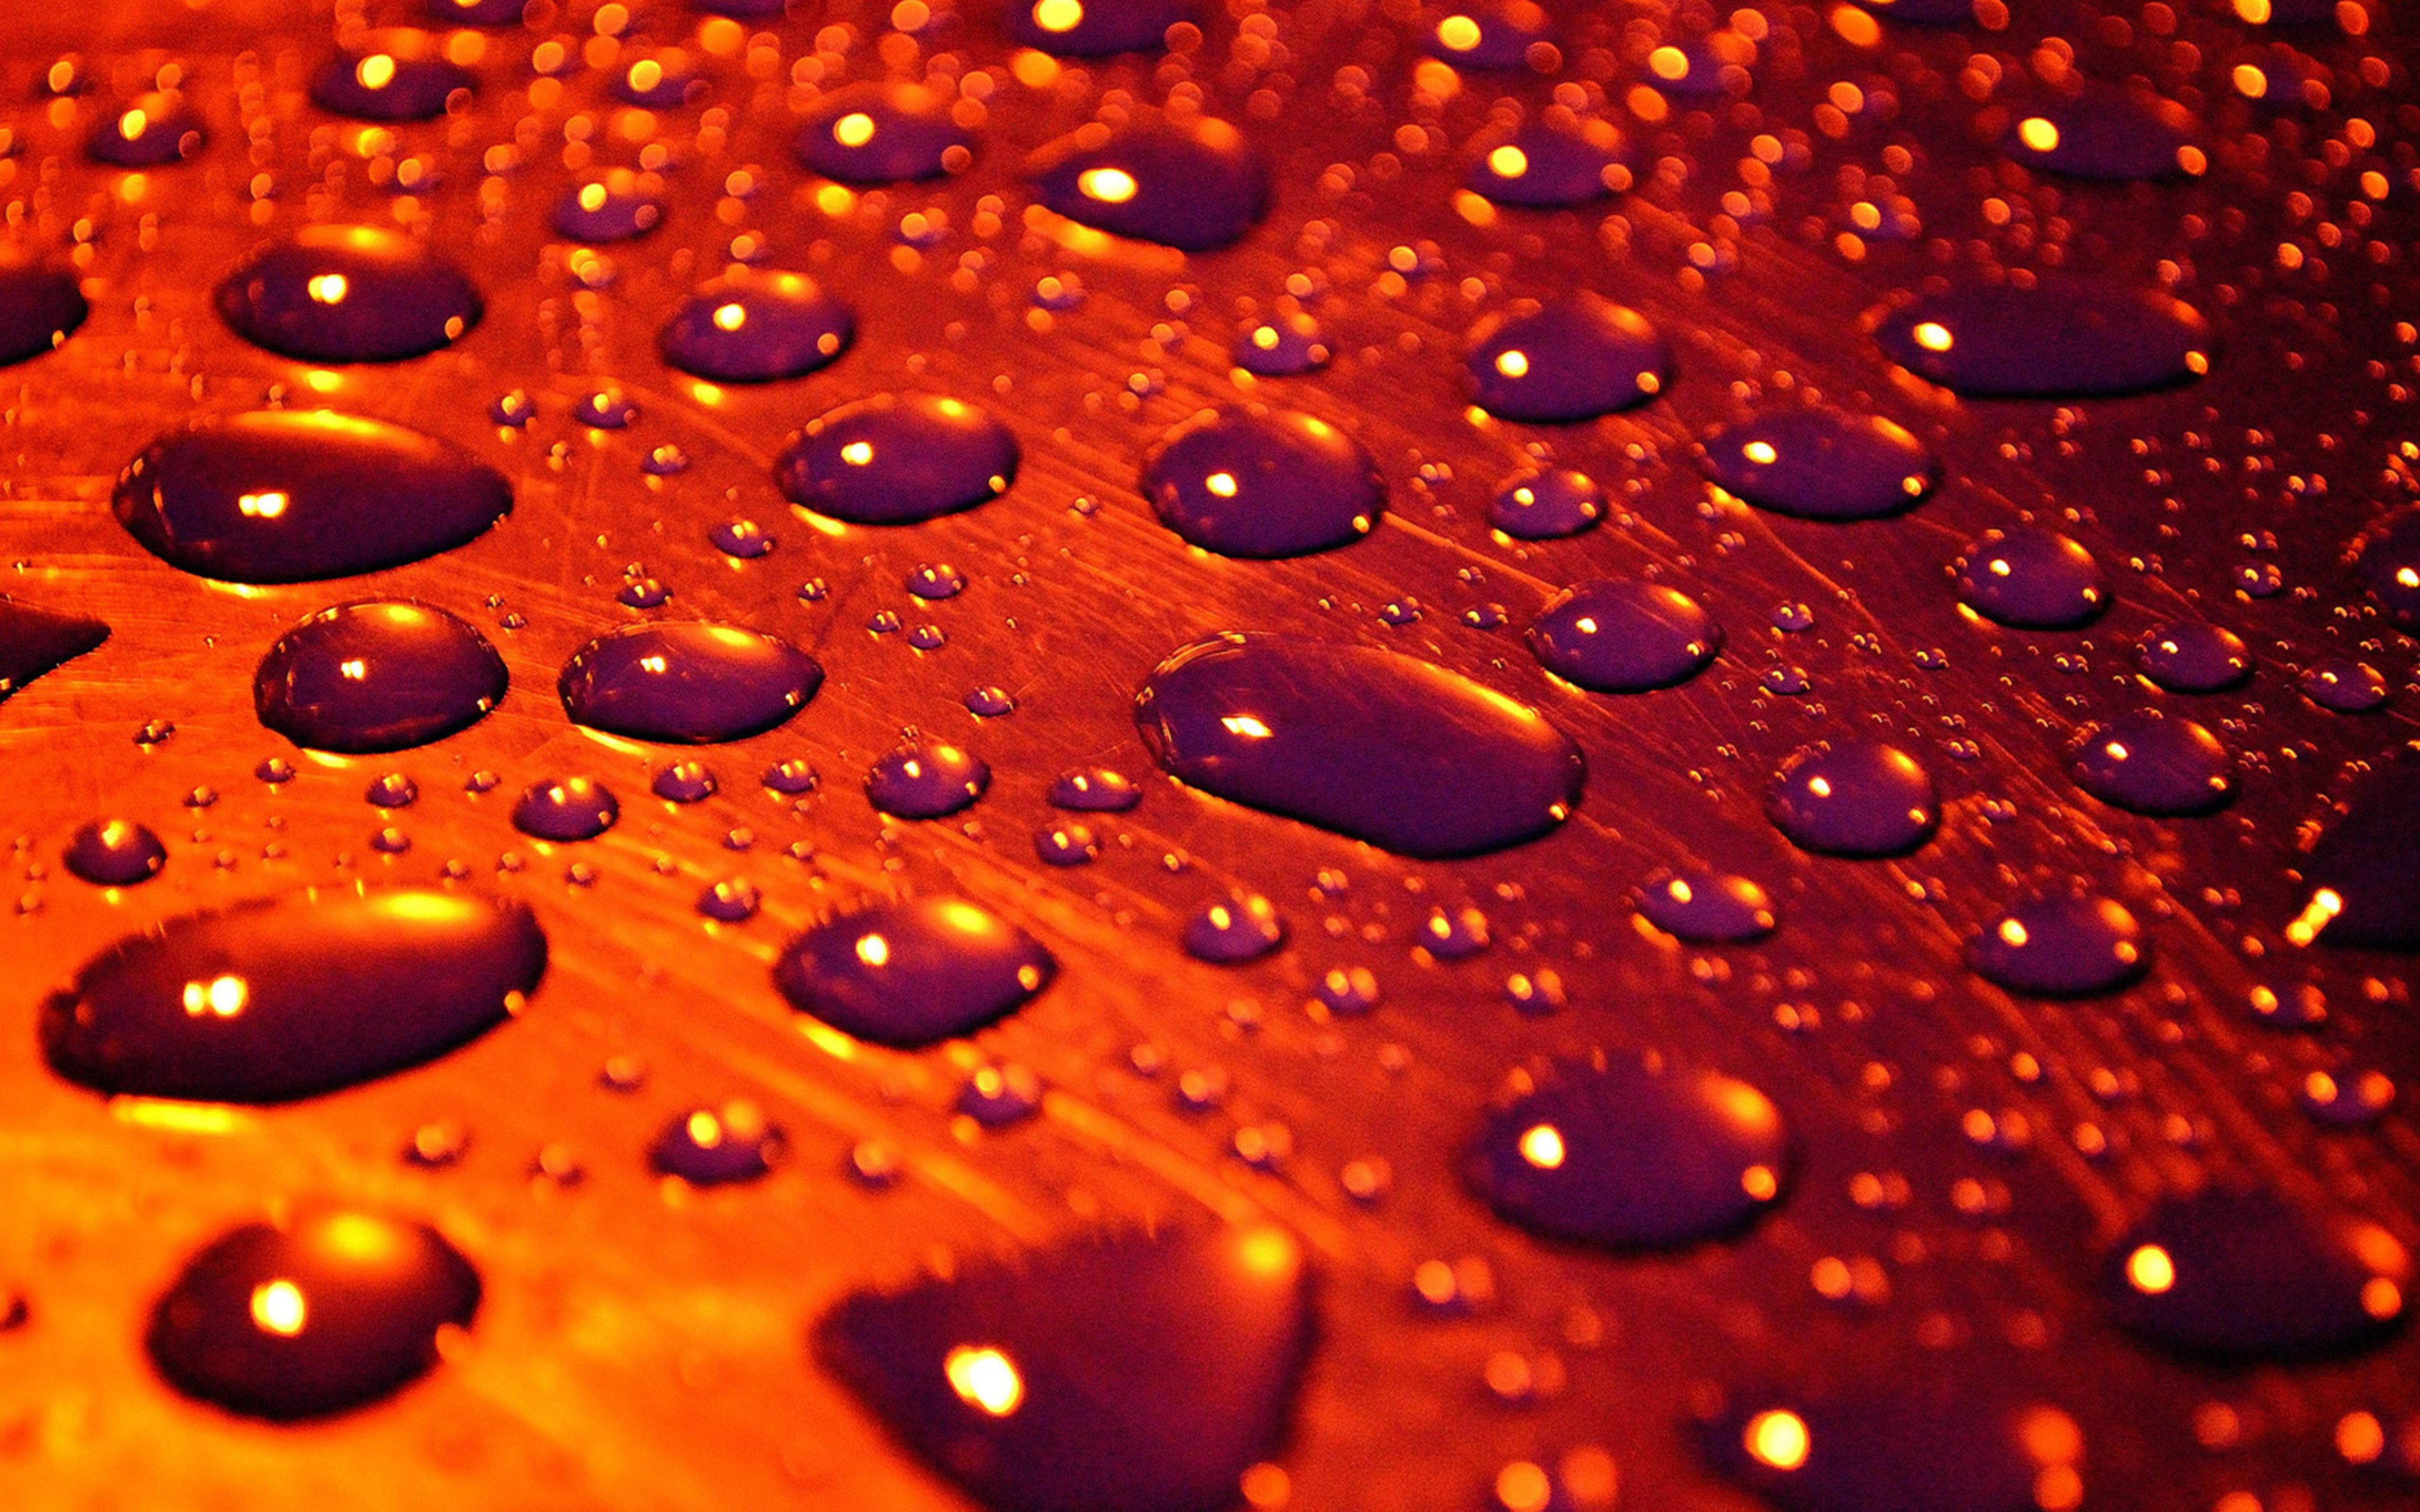 Download Wallpaper 5120x3200 Orange 3D With Many Water Drops